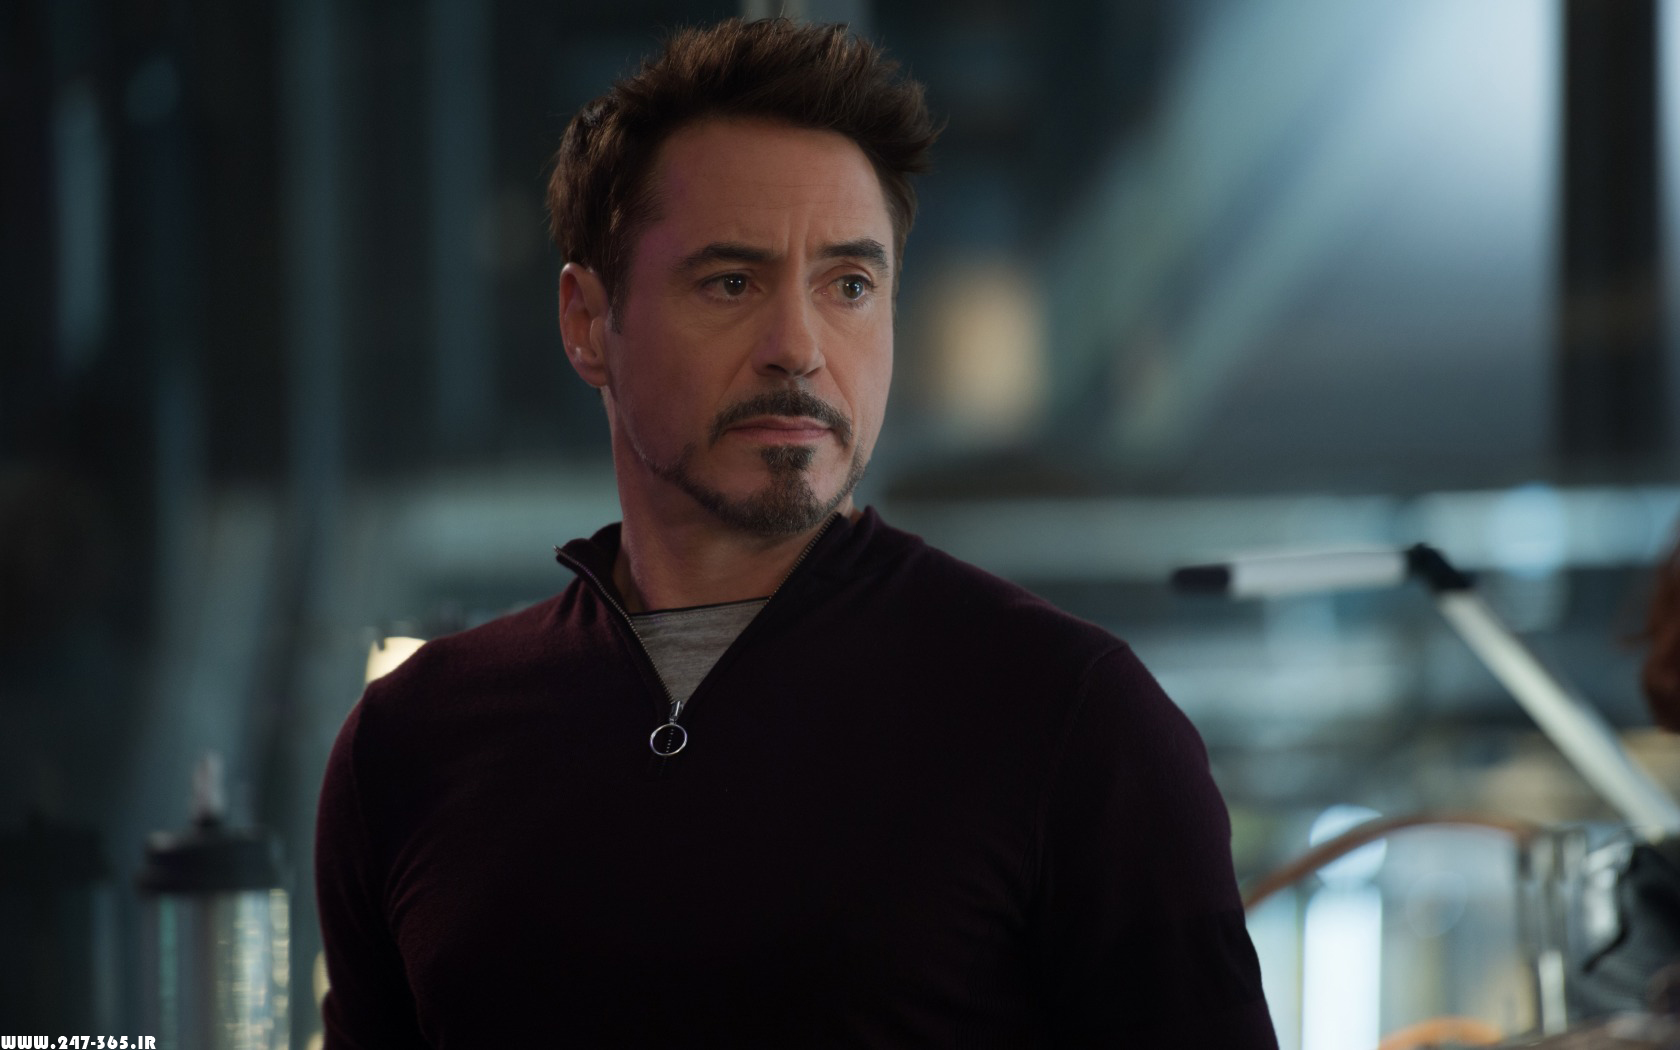 http://dl.247-365.ir/pic/celebrity/robert_downey_jr_3/Robert_Downey_Jr_3_15.jpg